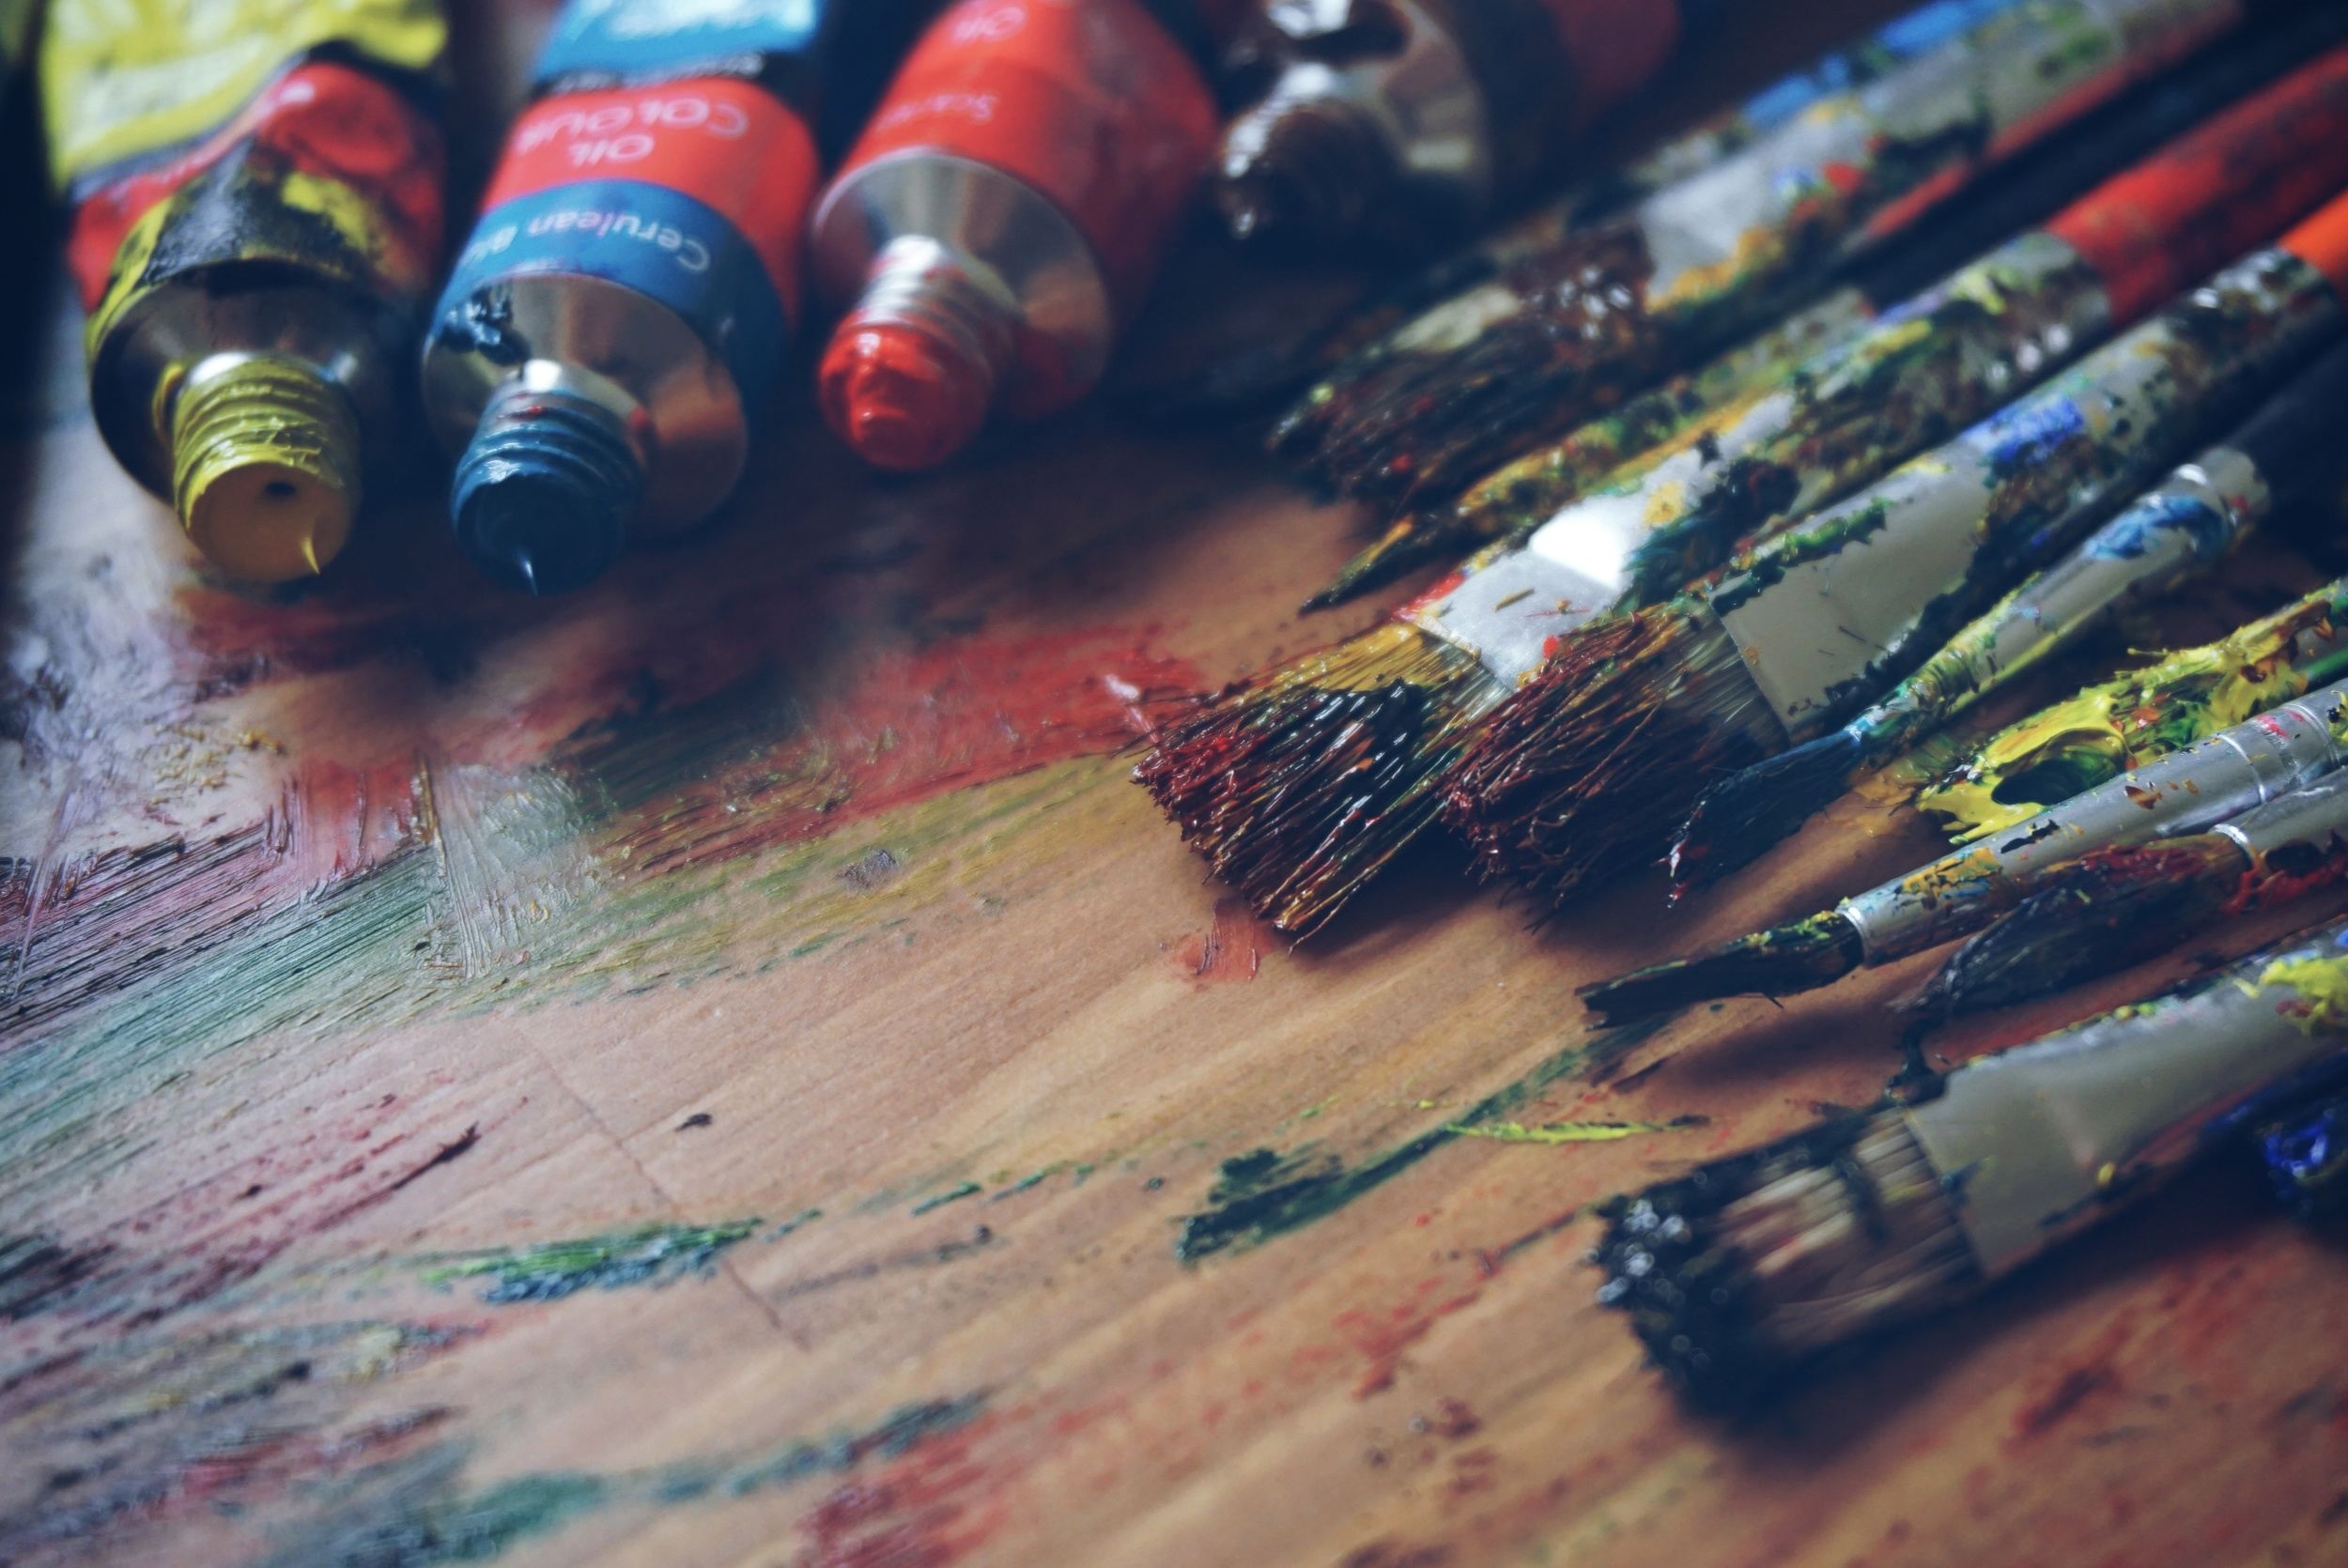 Open paint tubes in primary colors beside stained up paintbrushes on a wooden table.